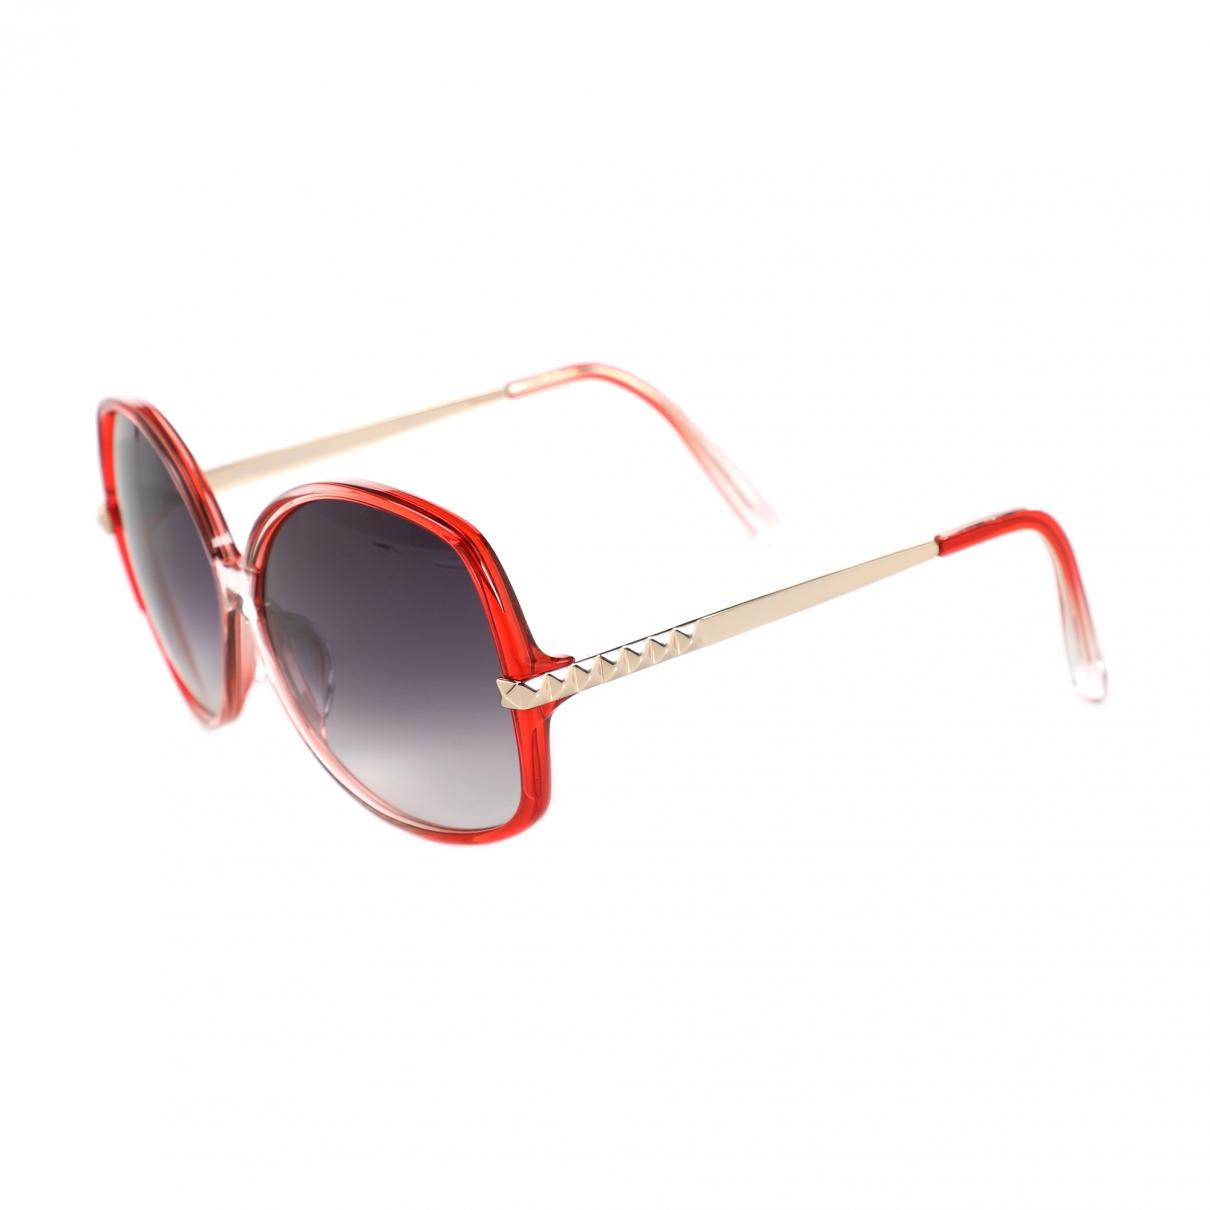 297c49e12a4a Linda Farrow - Red Oversized Sunglasses - Lyst. View fullscreen